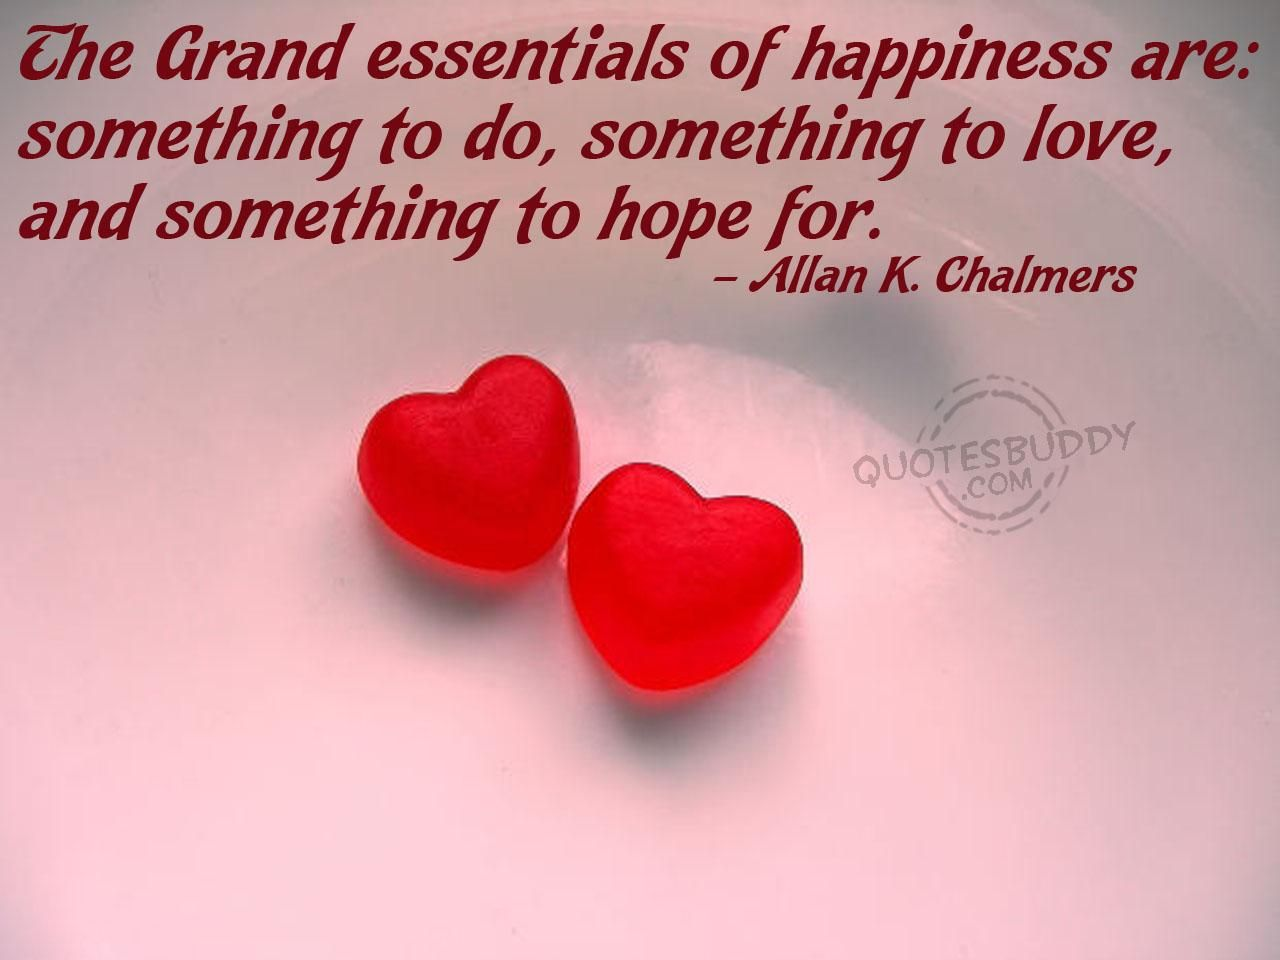 Happiness Is Something To Love Cute quote about happiness describing that happiness is something to